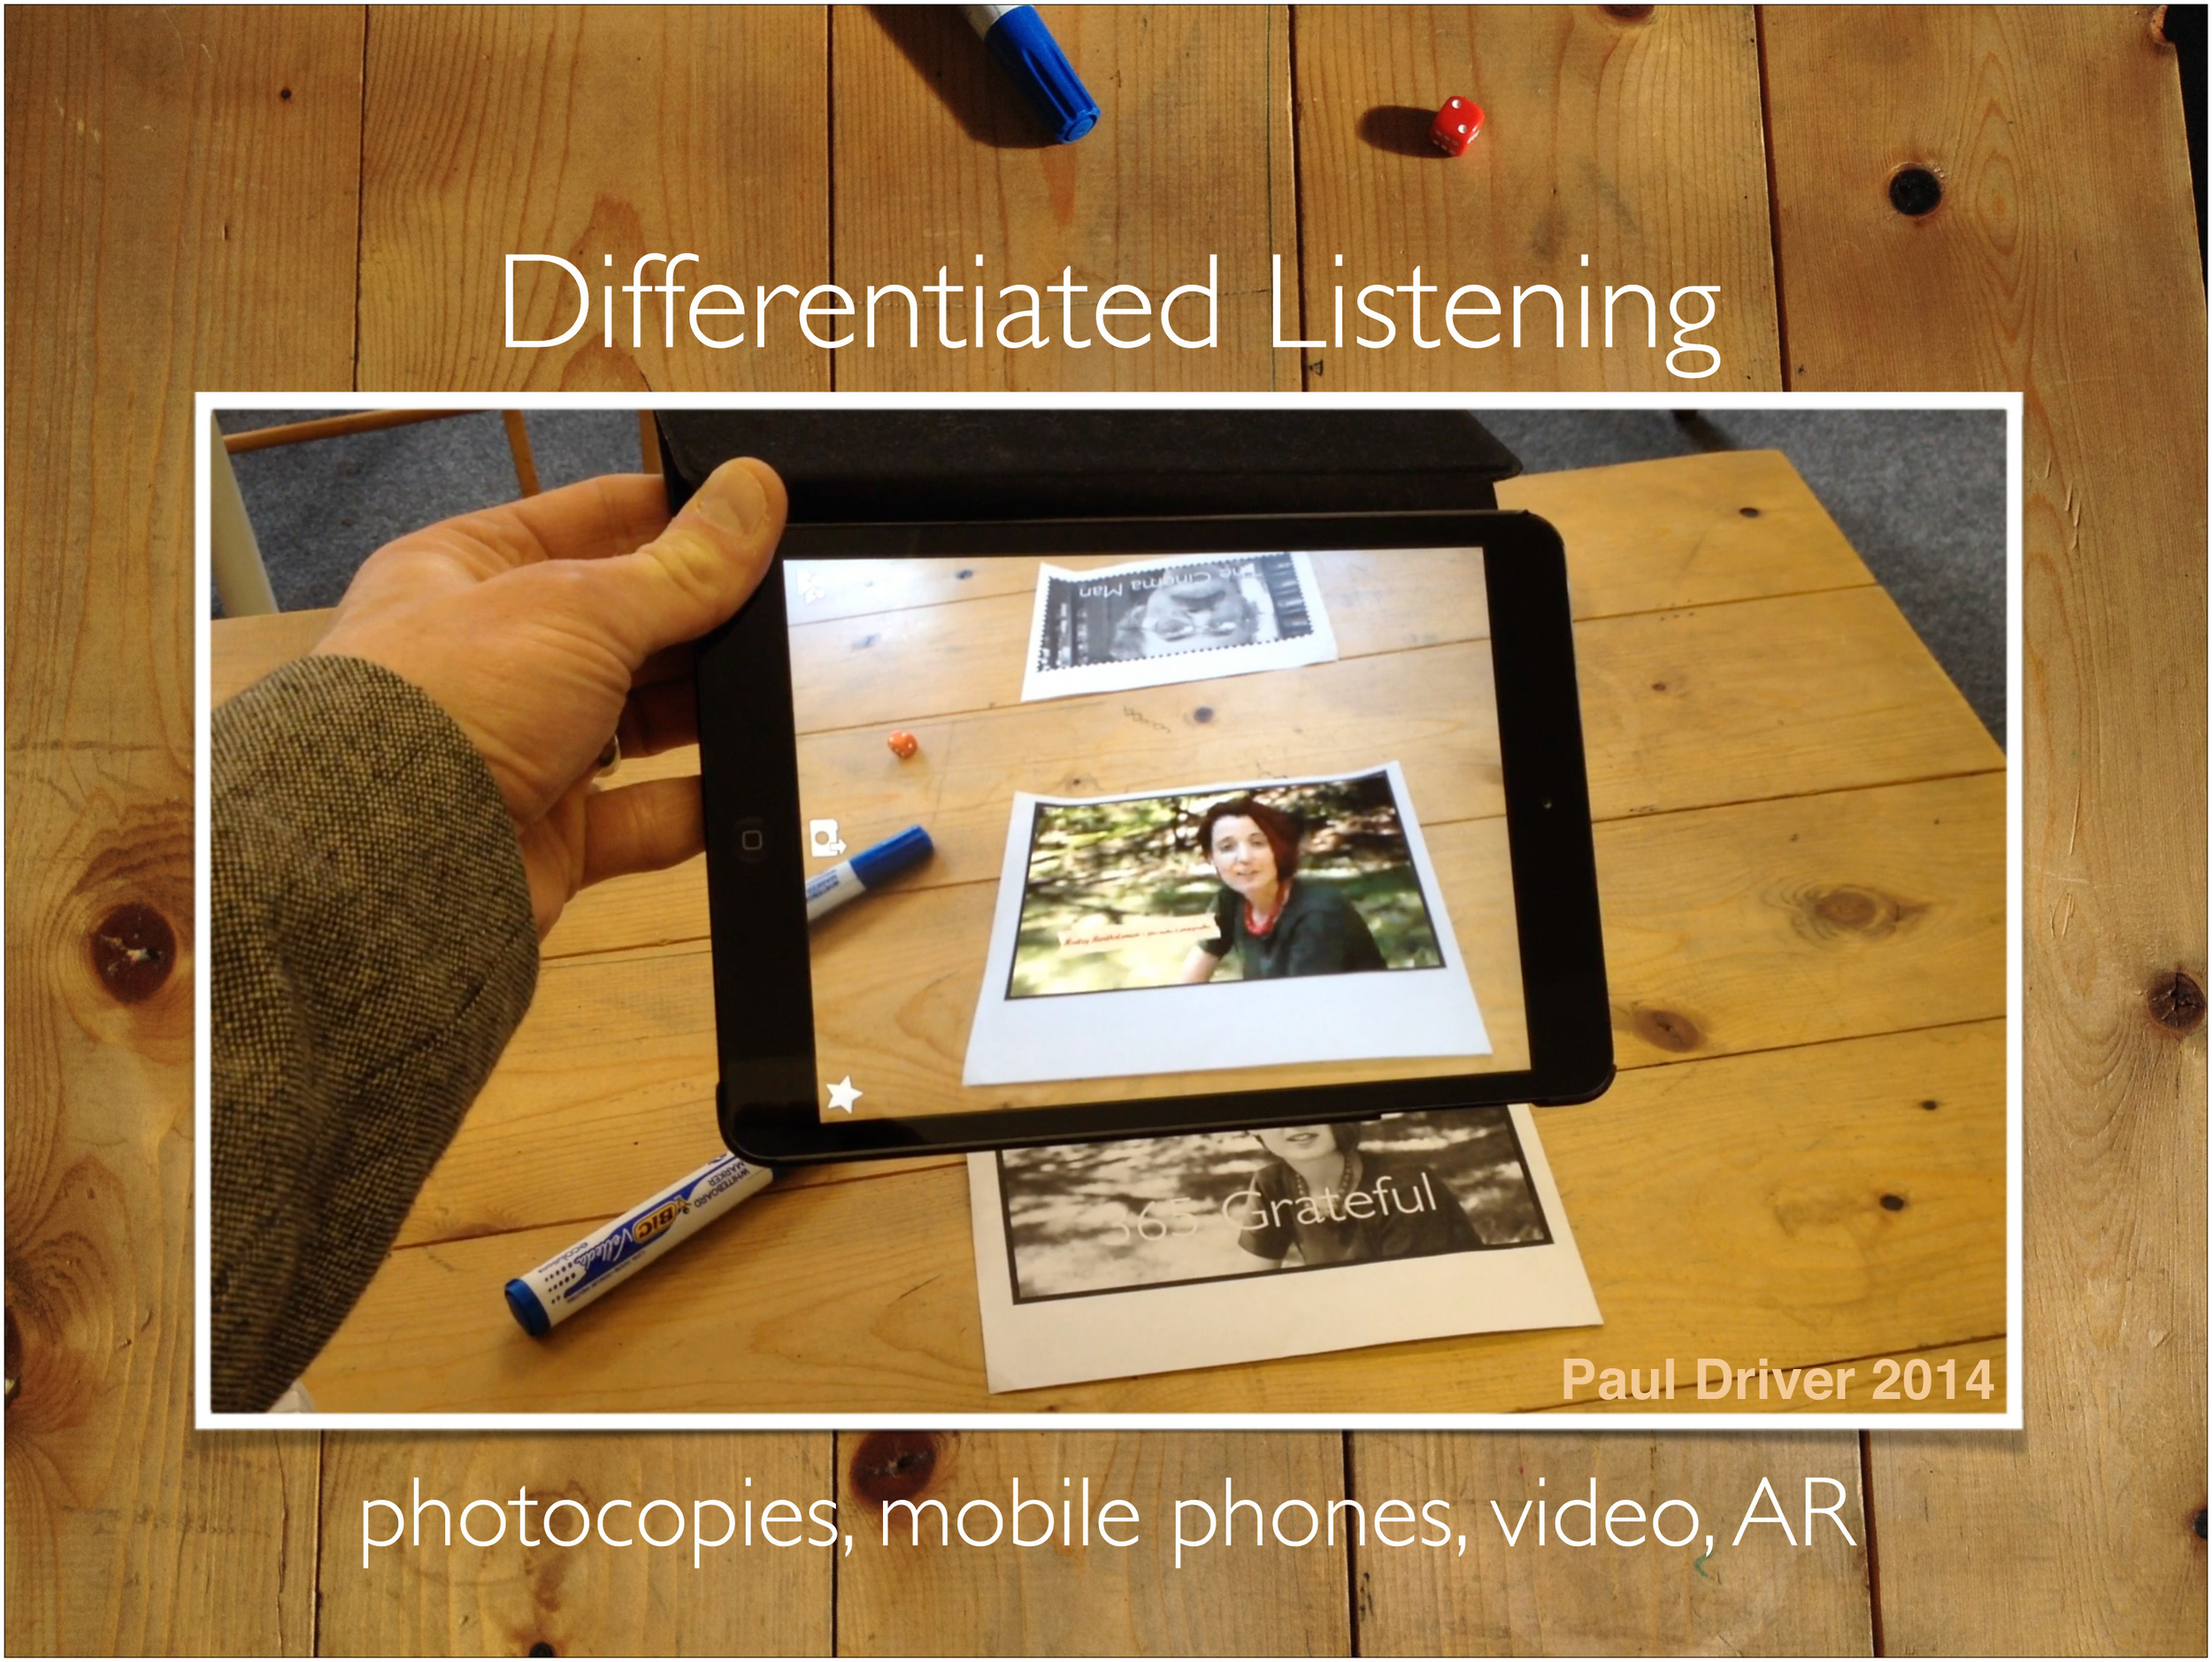 This year I've been using augmented reality to create differentiated video listenings for my fairly diverse intermediate group. Learners can take control of the material and listen multiple times. Using the headphones connected to their mobile devices they can simultaneously work on different (though thematically linked) material. The headphones also enable them to listen in a more focused way.